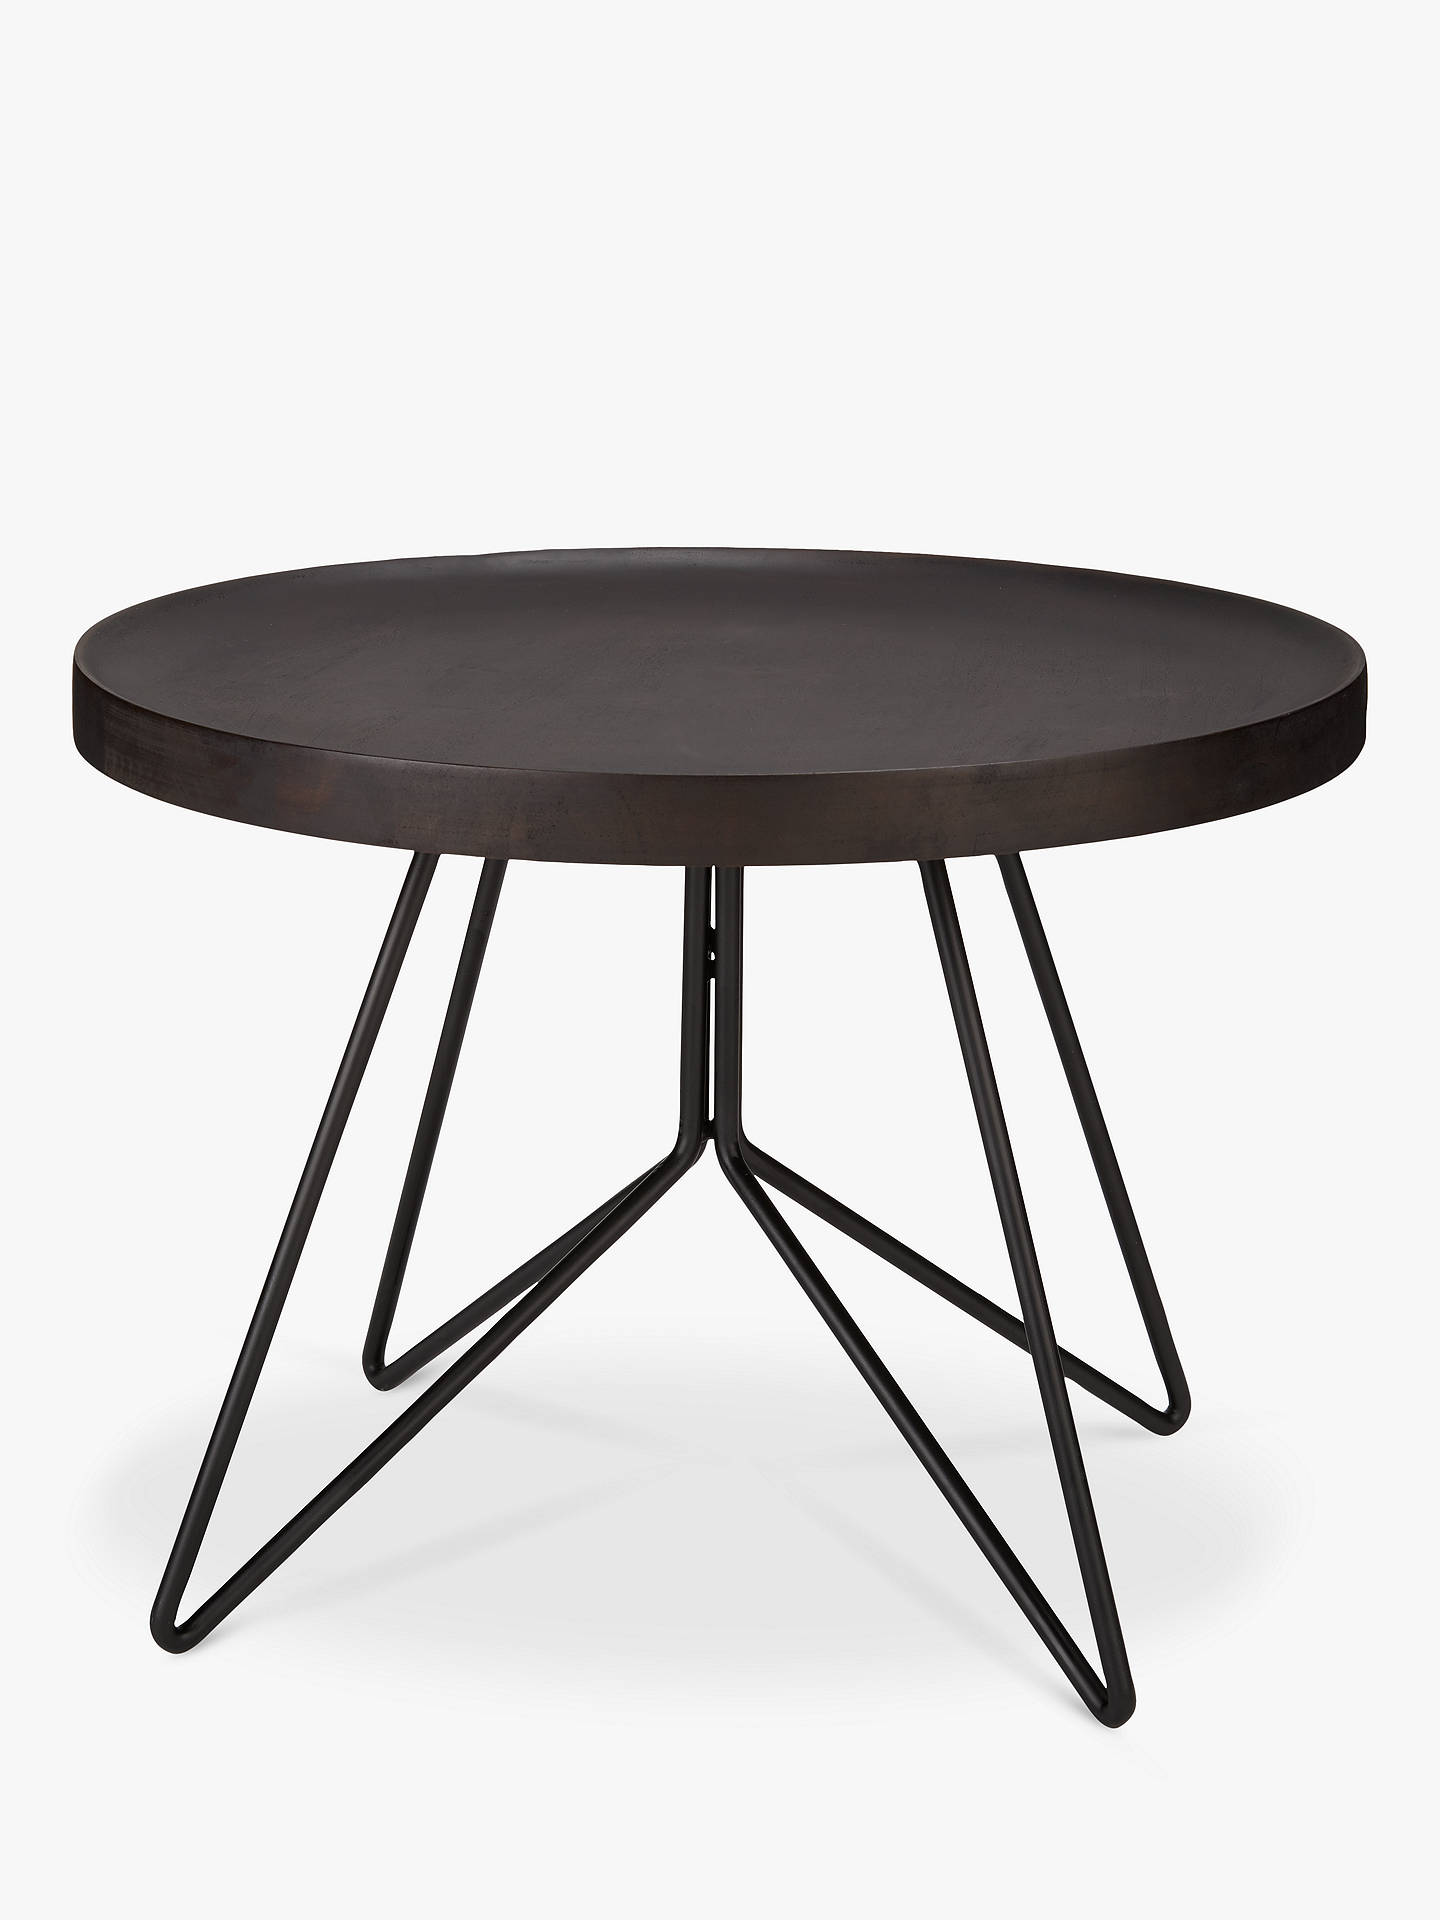 Content By Terence Conran Balance Bowl Coffee Table